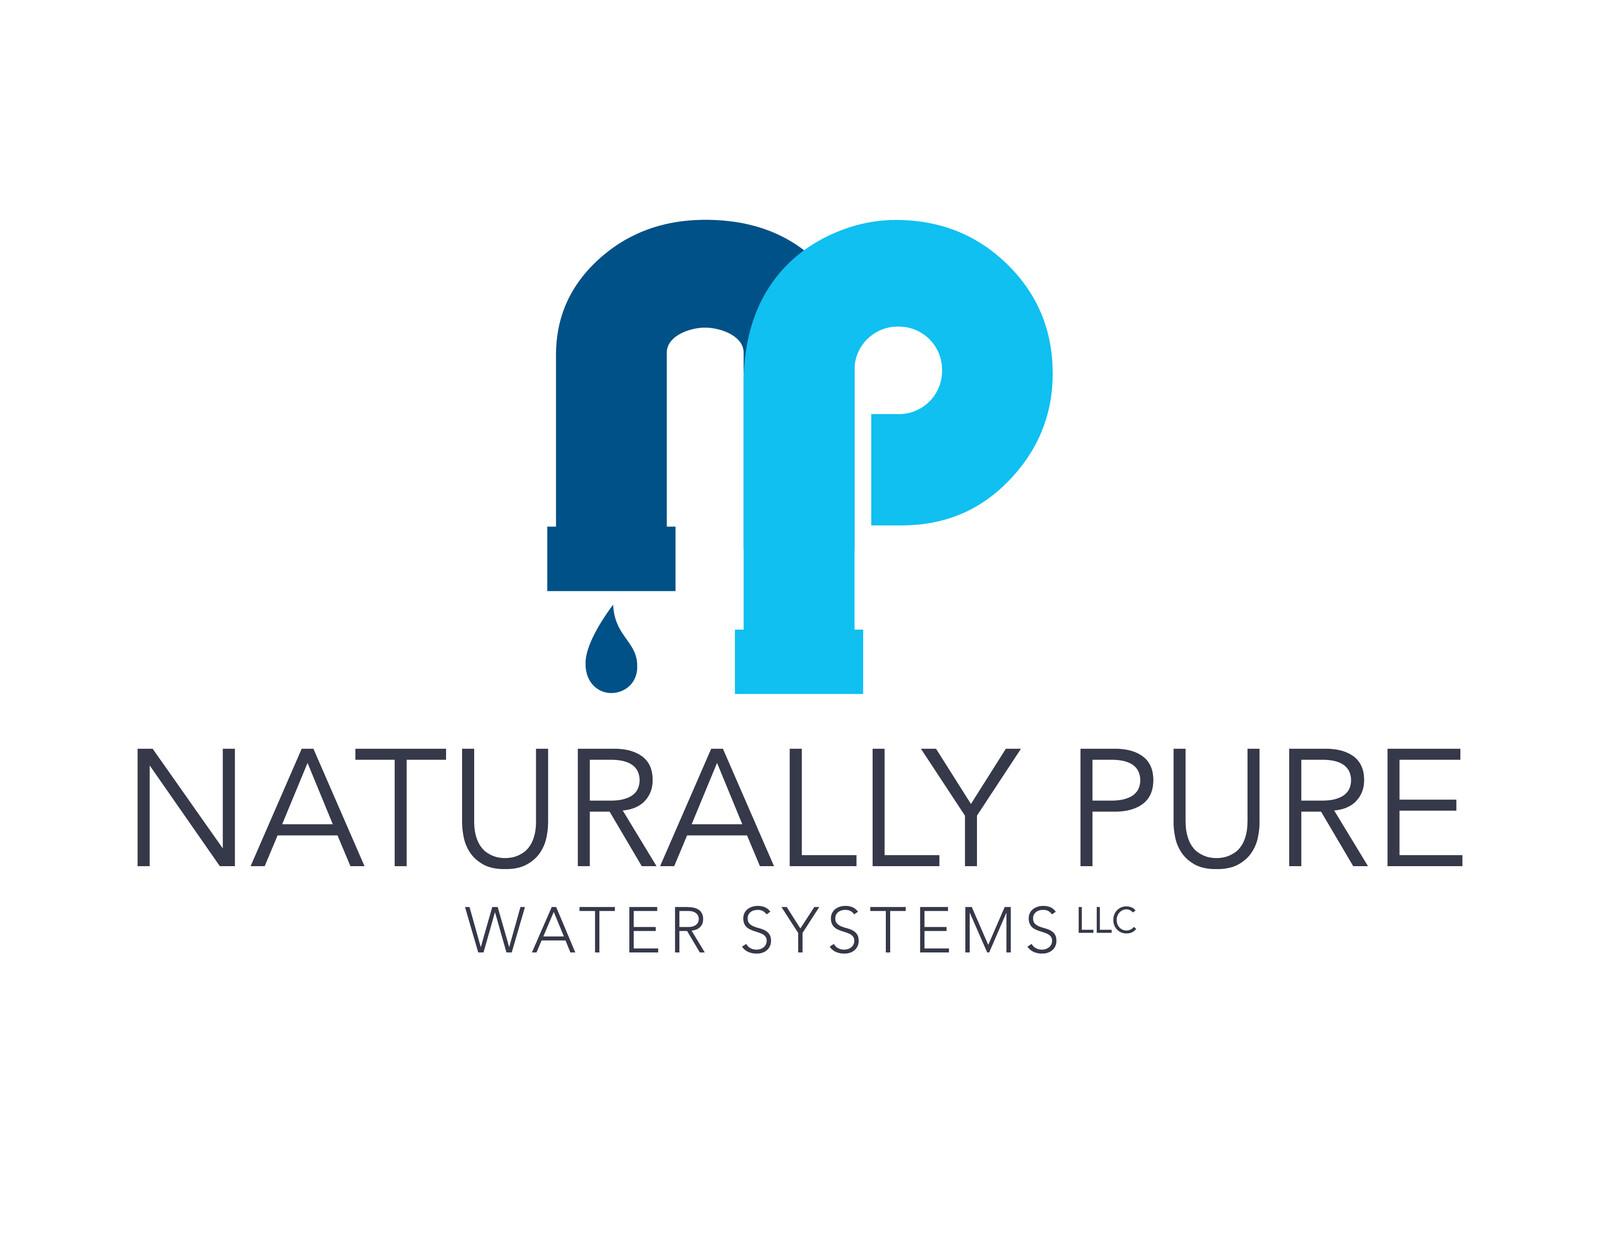 Naturally Pure Water Systems Brand